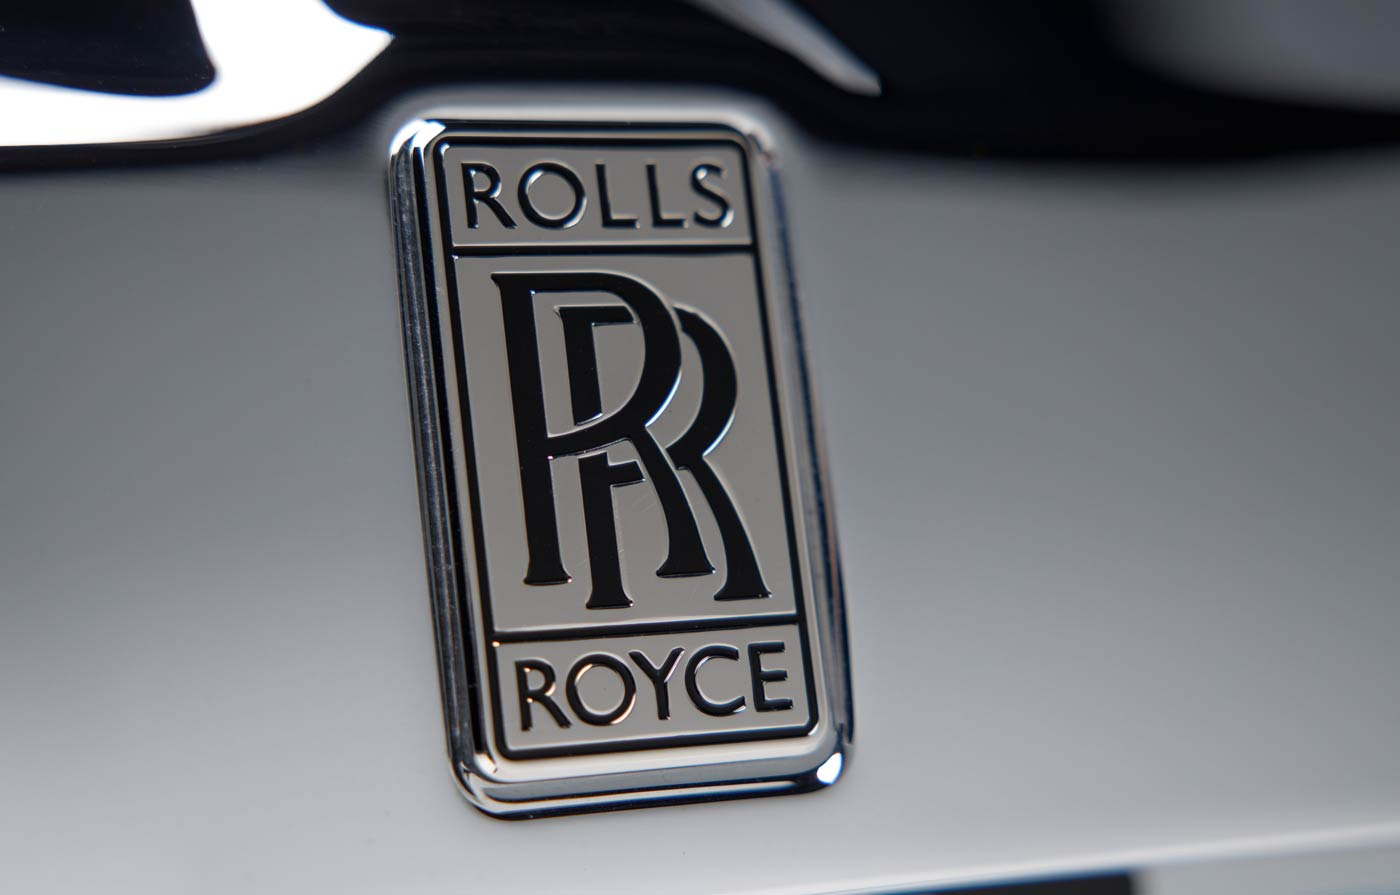 2015 Rolls-Royce Phantom - The JBS Collection